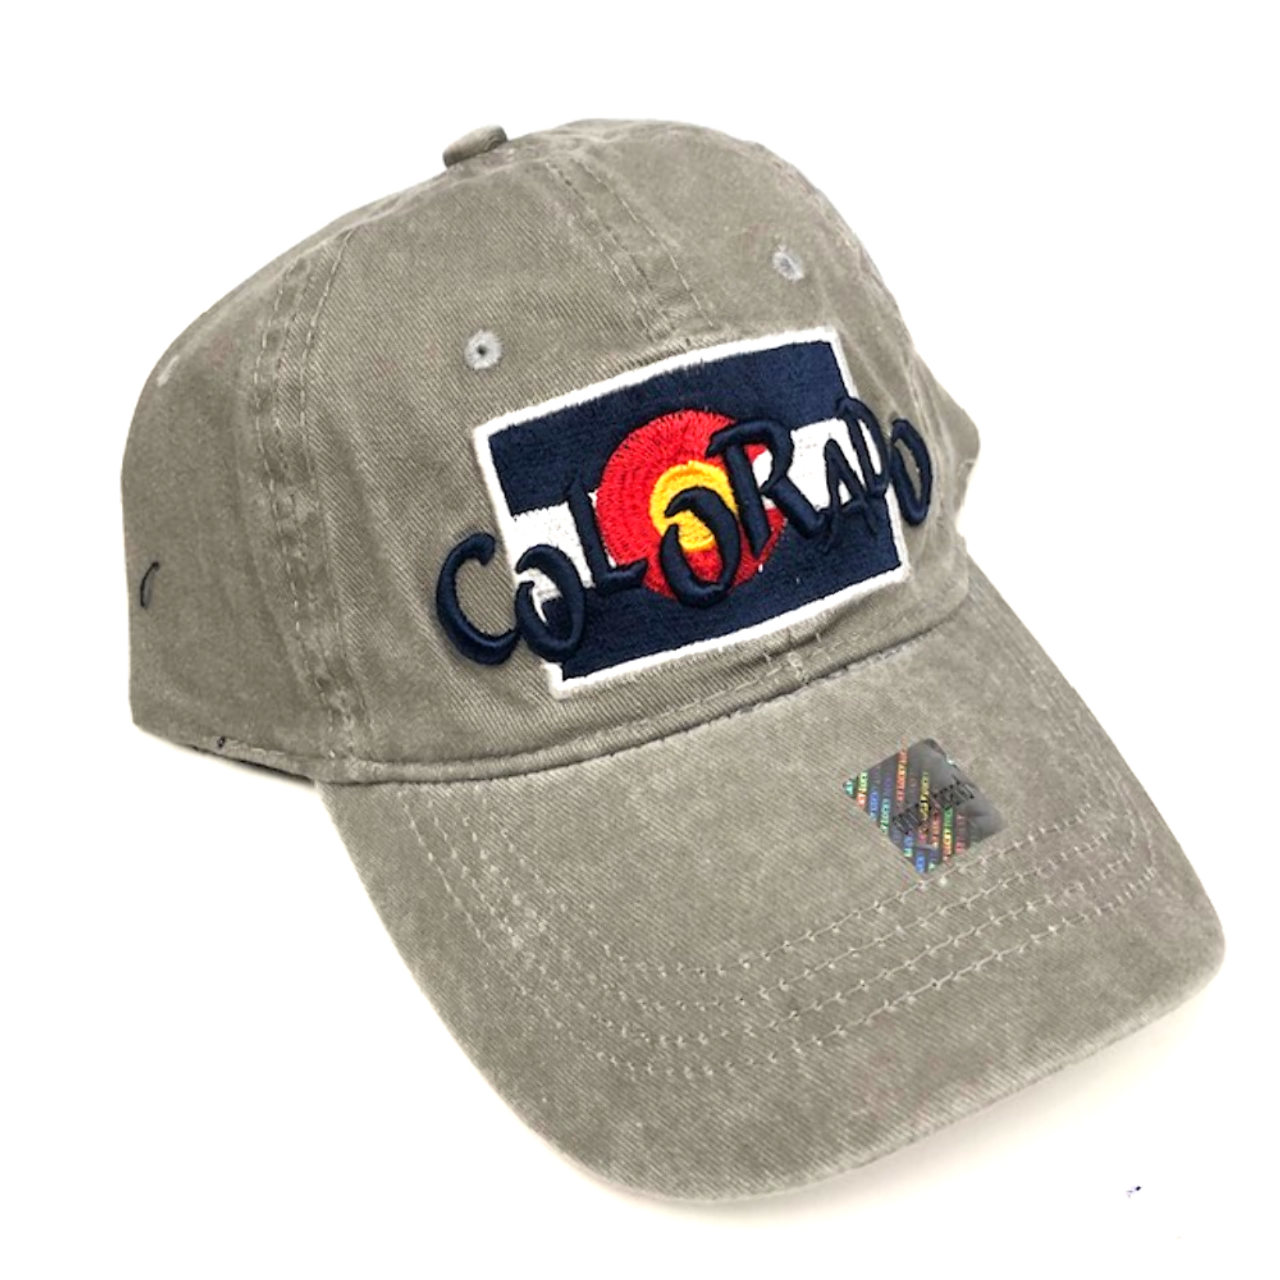 37184f1a7 Colorado Flag w/ Funky Colorado Adjustable Flat Brim Baseball Hat (GREY)